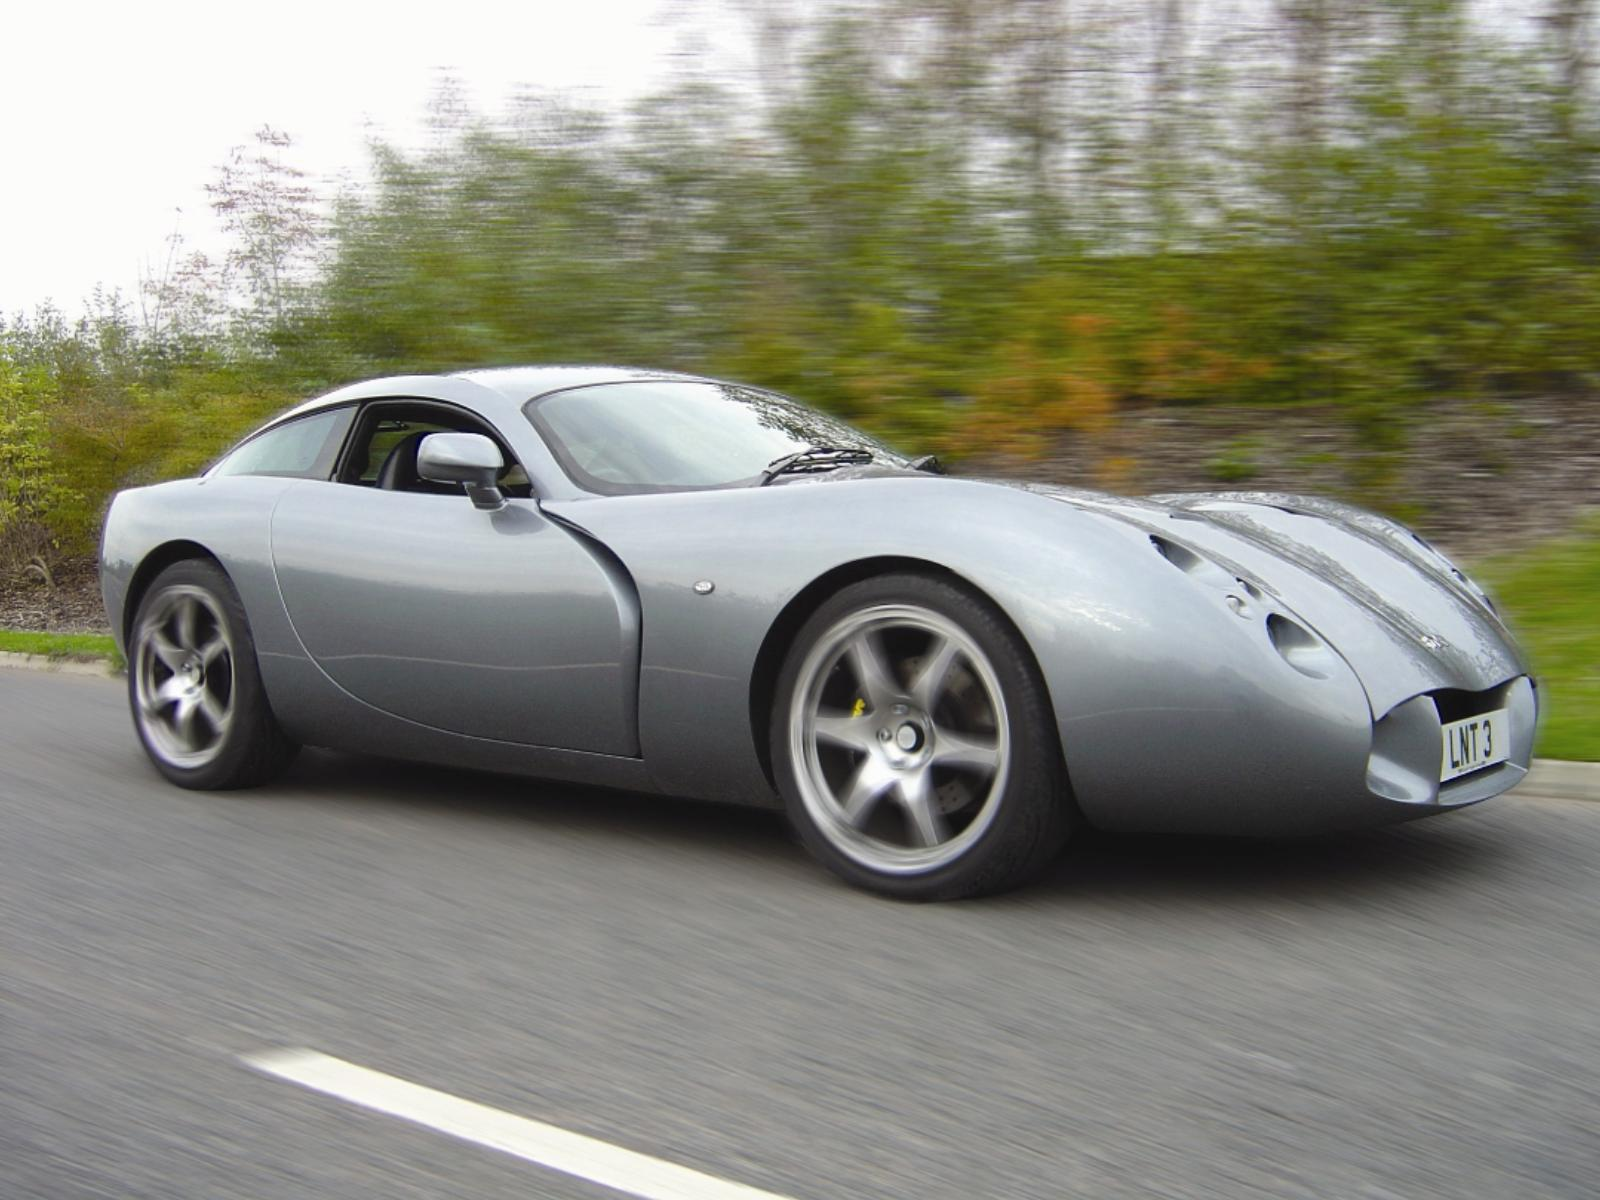 Tvr t440r photo - 1